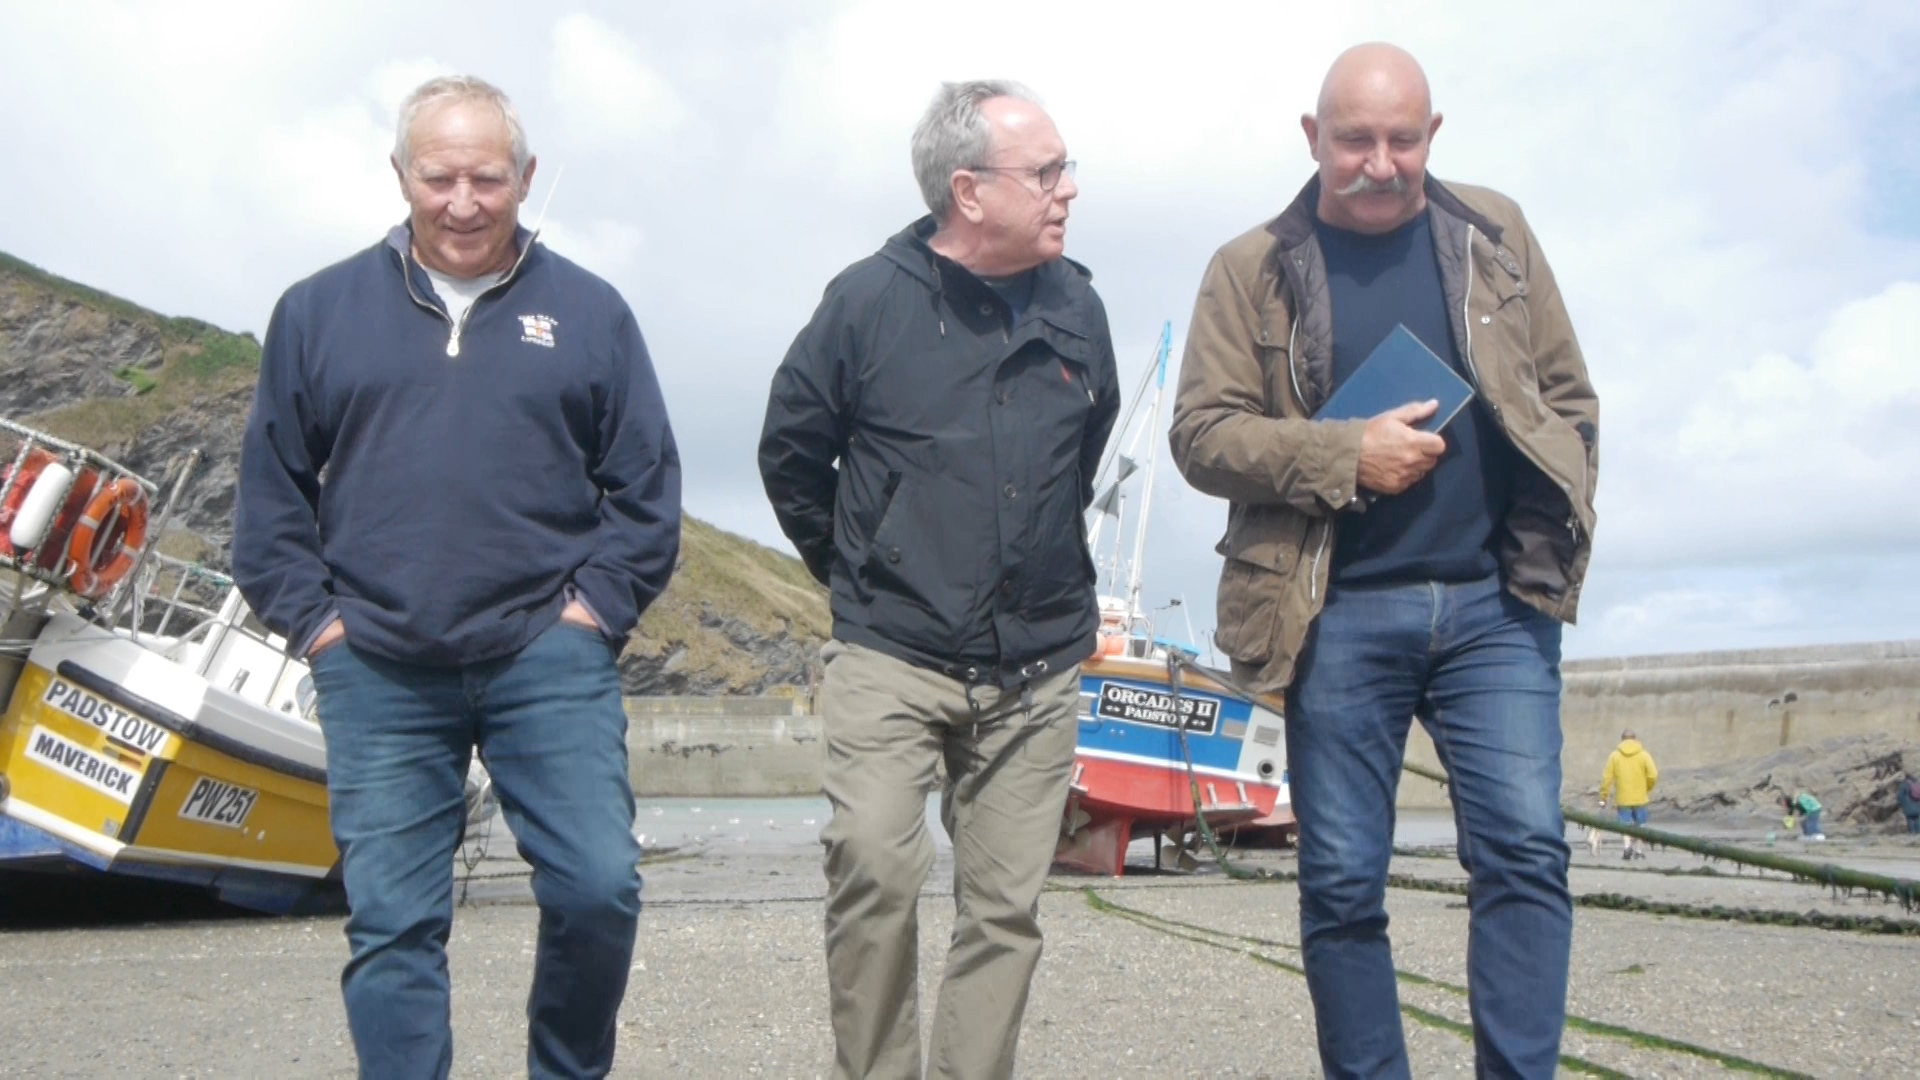 Fisherman's Friends in Port Isaac